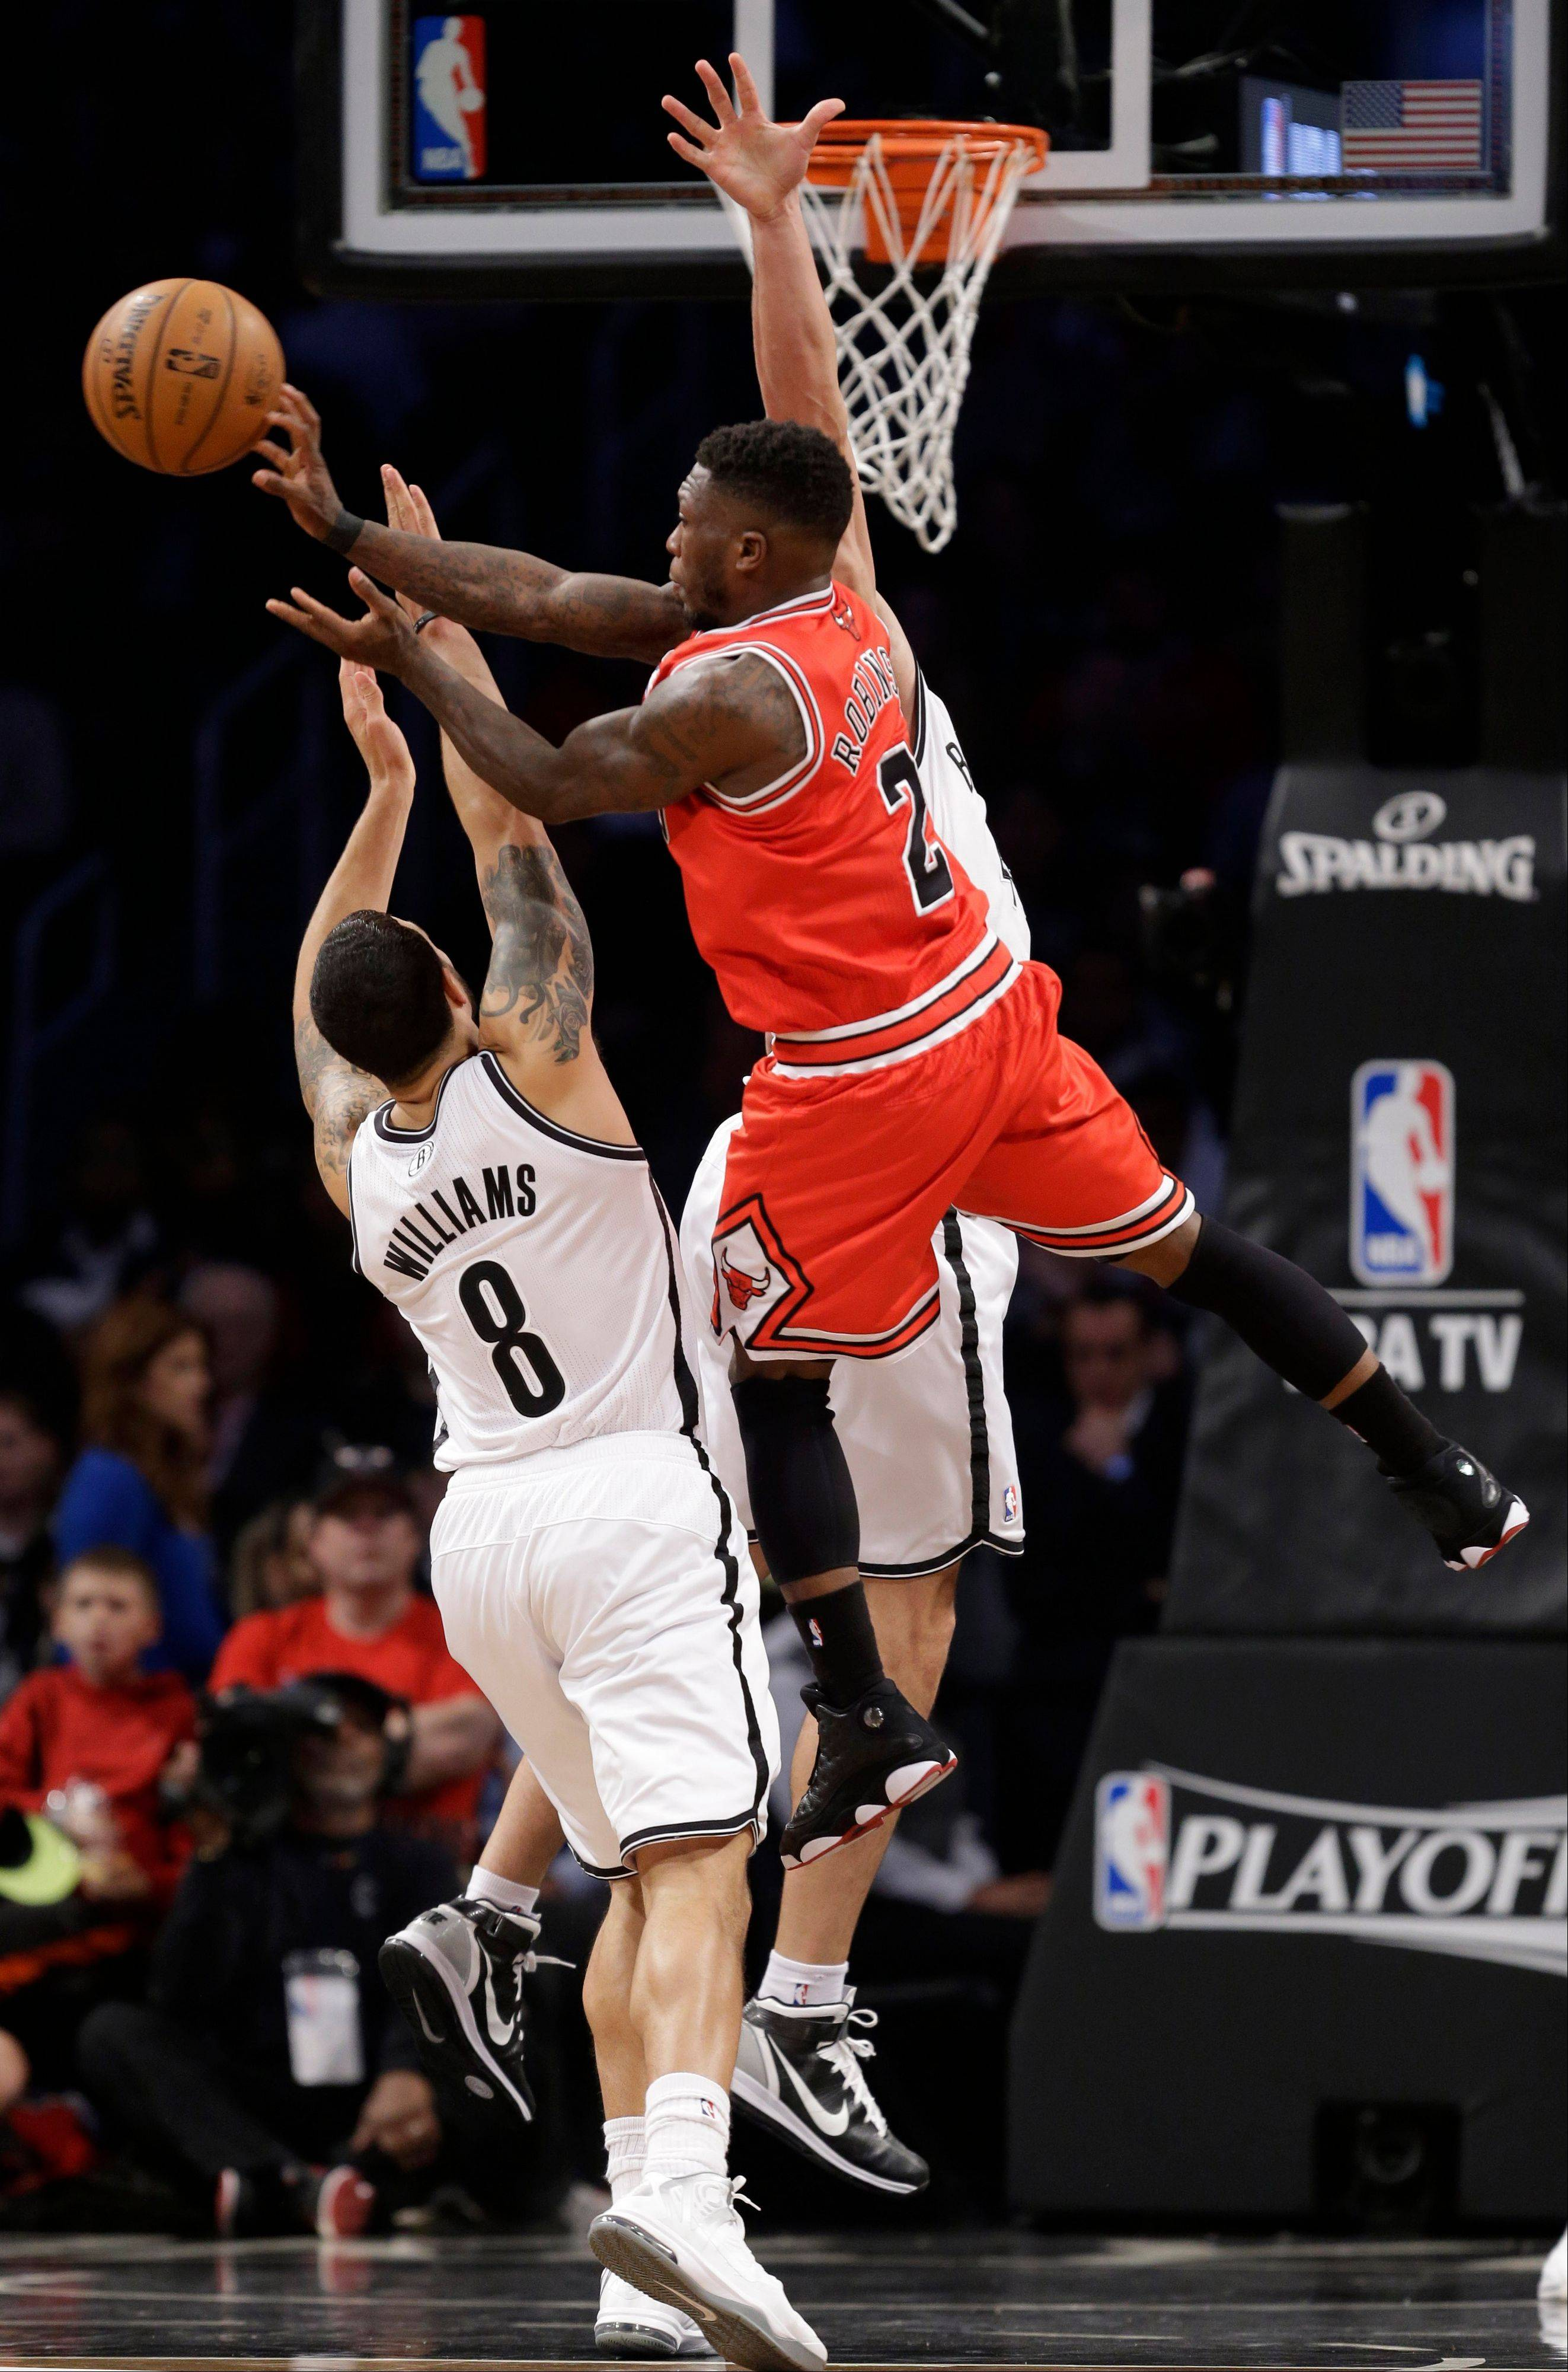 Bulls guard Nate Robinson (2) passes over the defense of Brooklyn Nets guard Deron Williams (8) in the first half of Game 5 of their first-round NBA basketball playoff series, Monday, April 29, 2013, in New York.